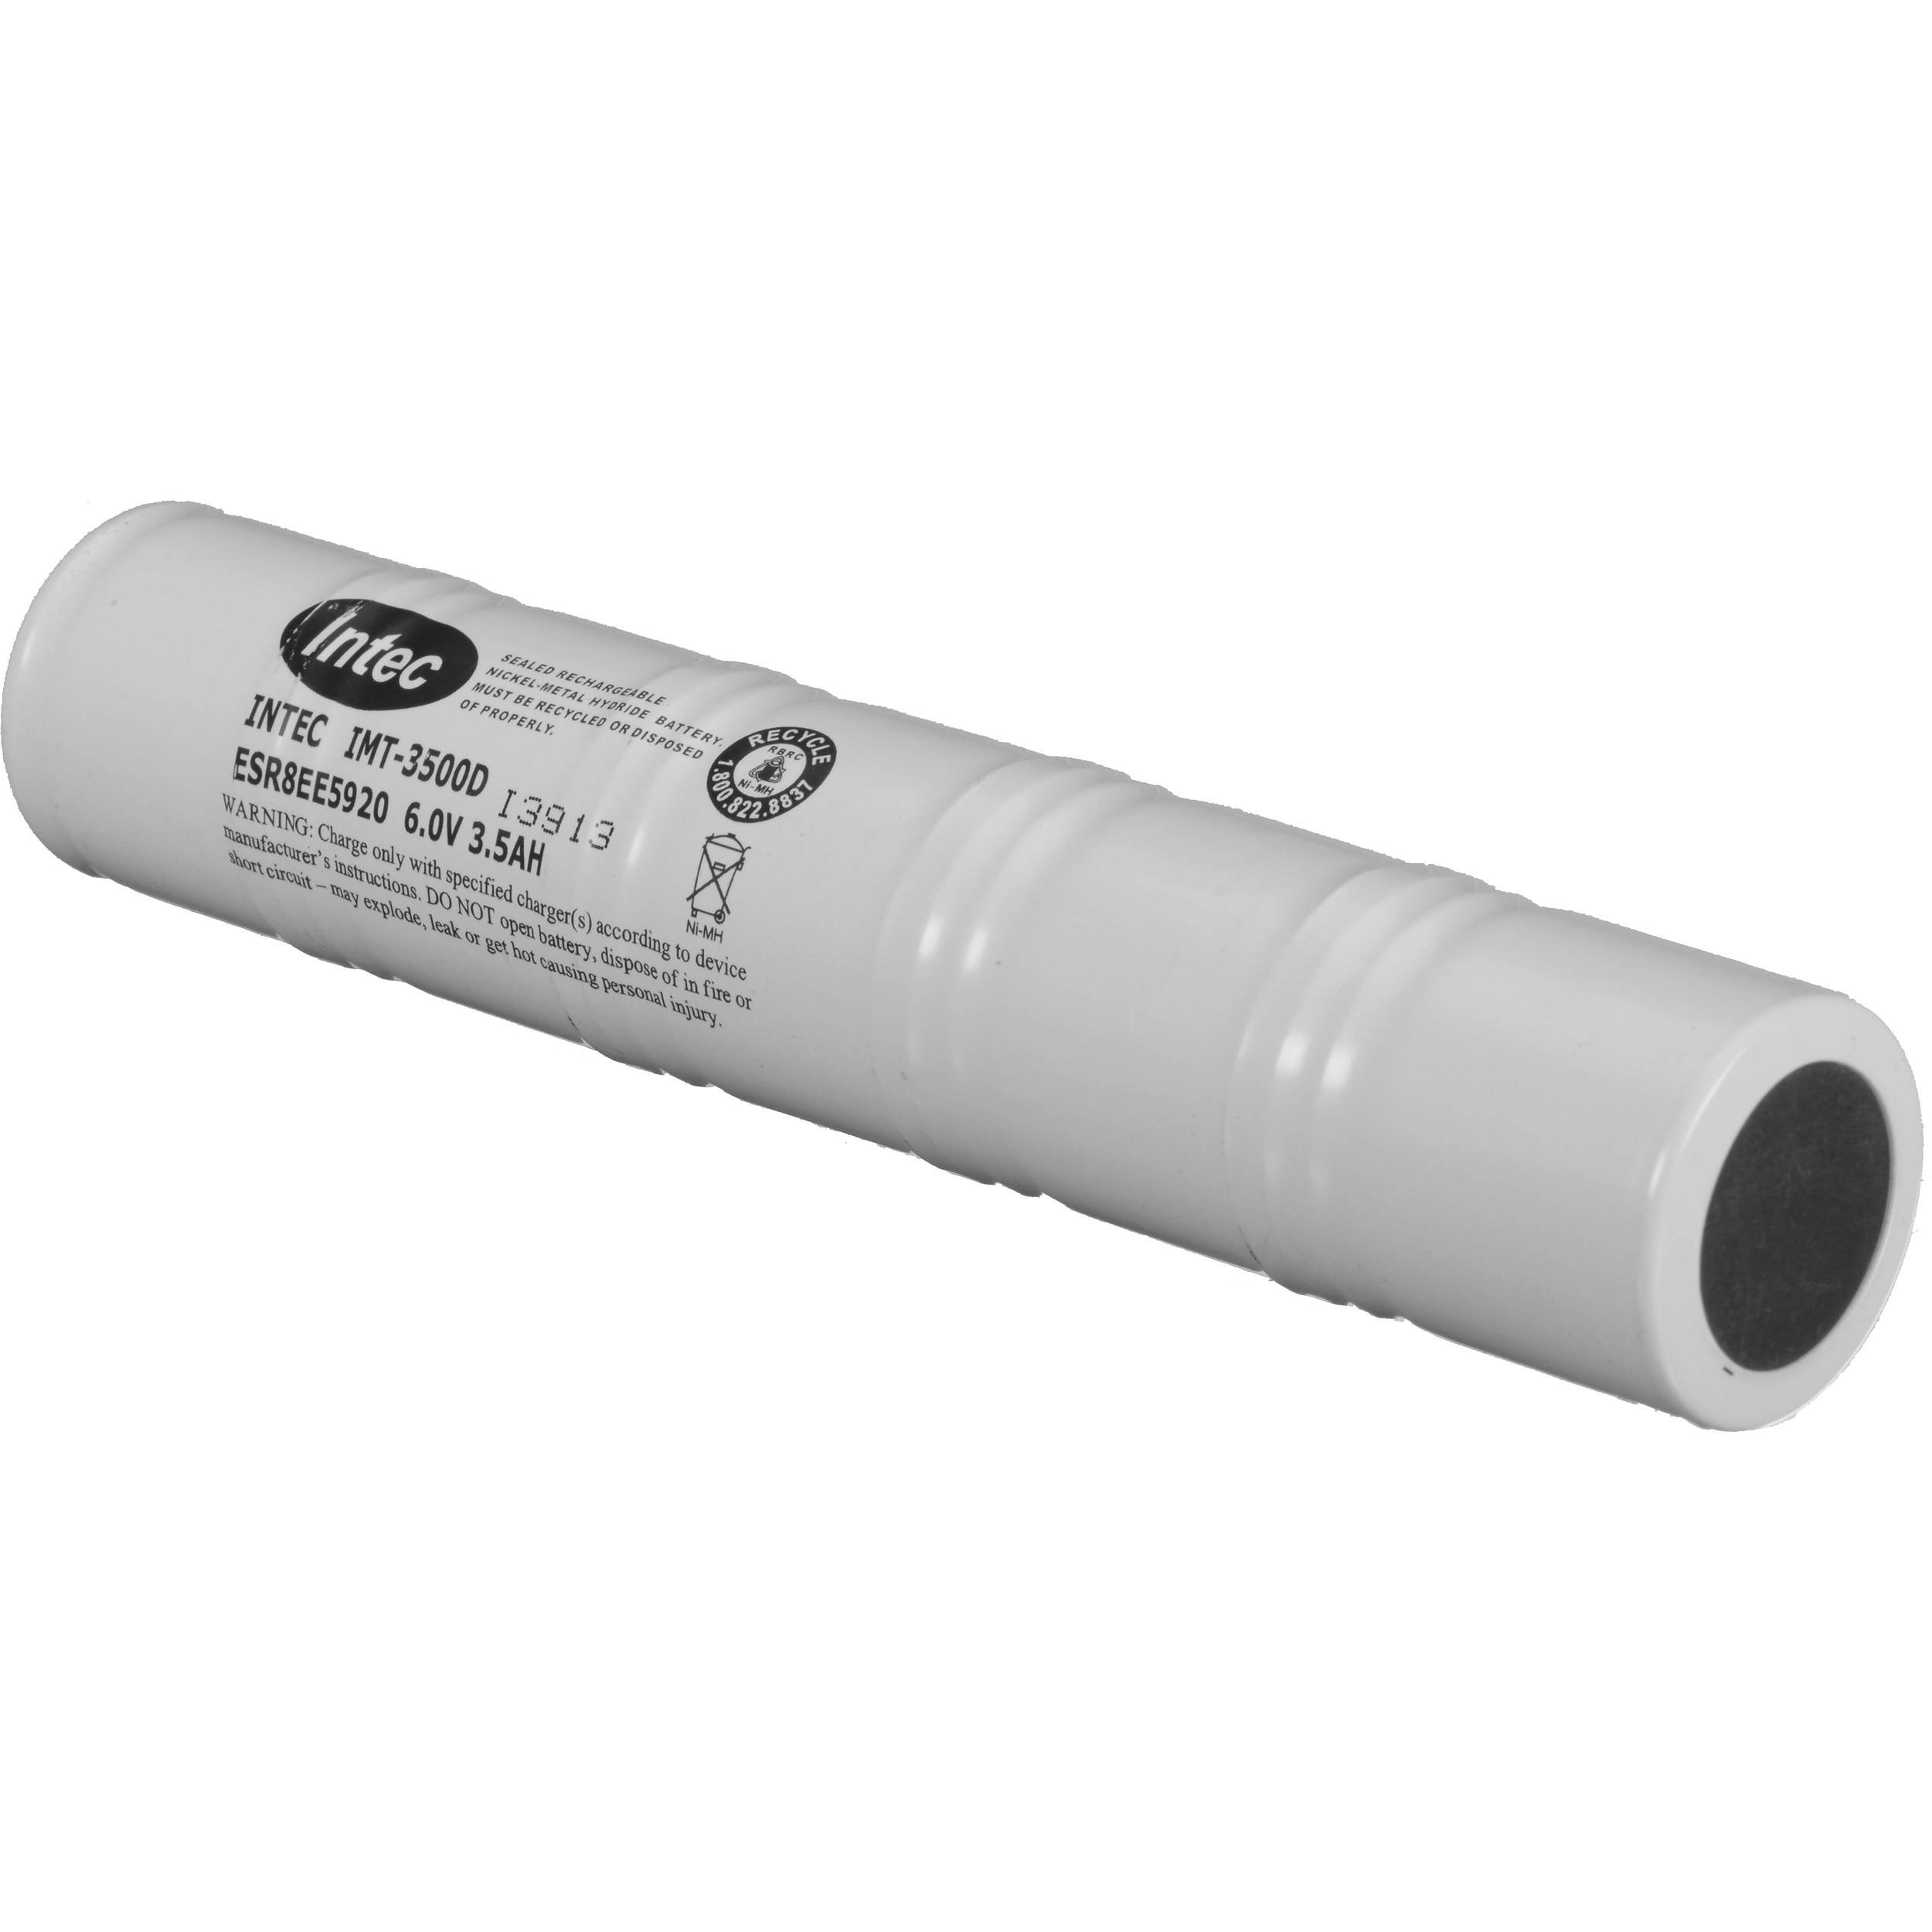 Maglite 6 Volt NiMH Battery Pack for Mag Charger - ARXX235 by MagLite